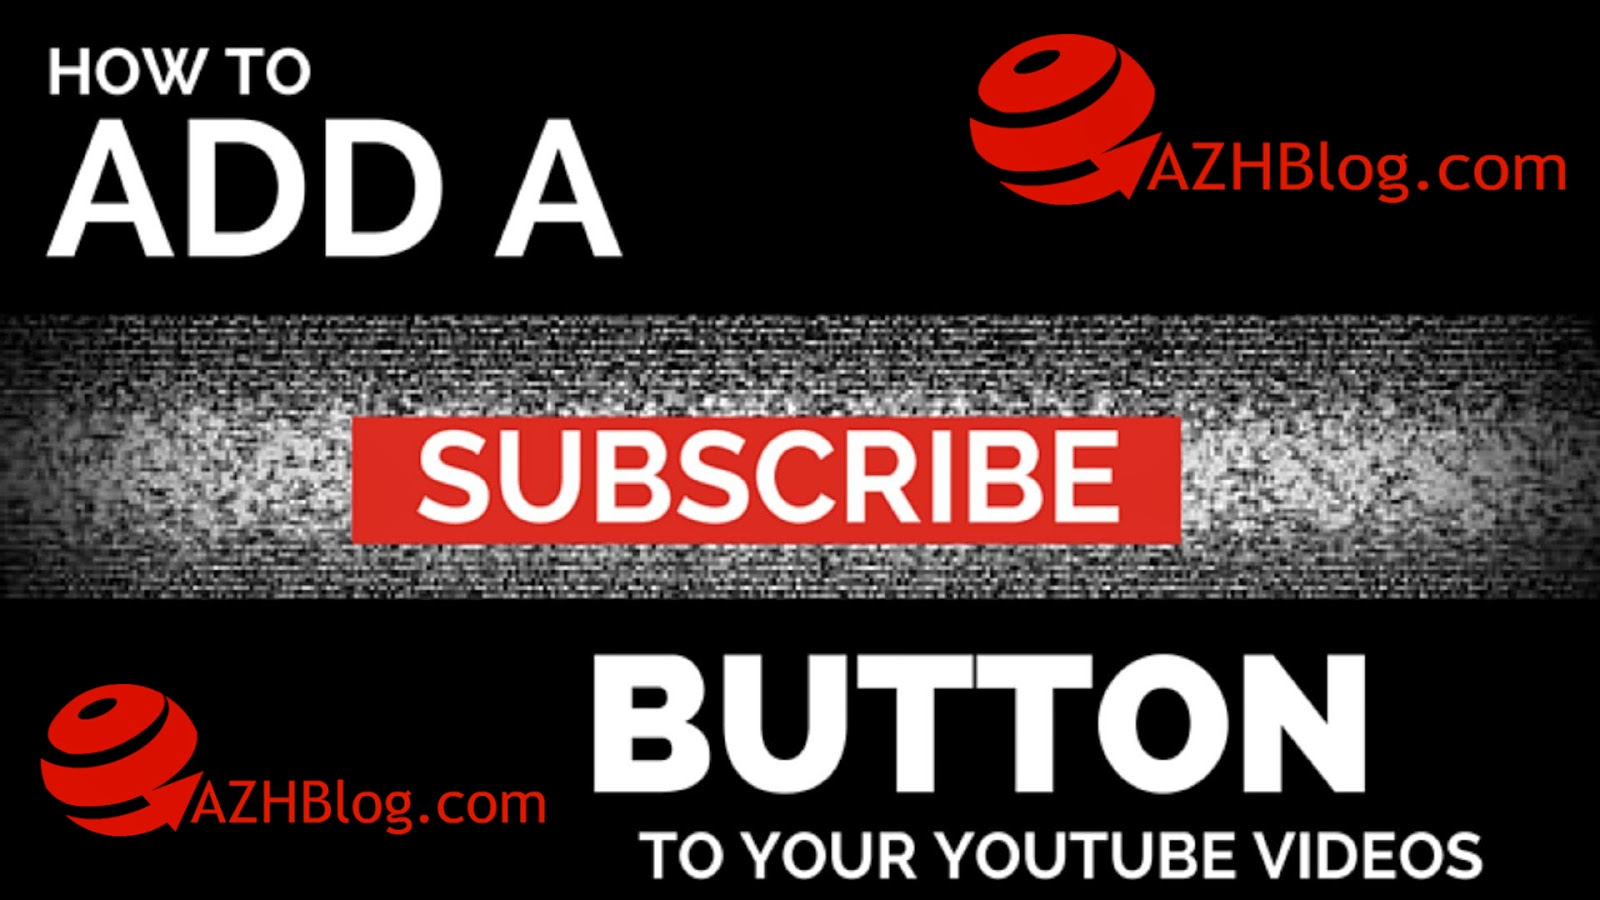 Benefits Of Adding Subscribe Button To Youtube Video